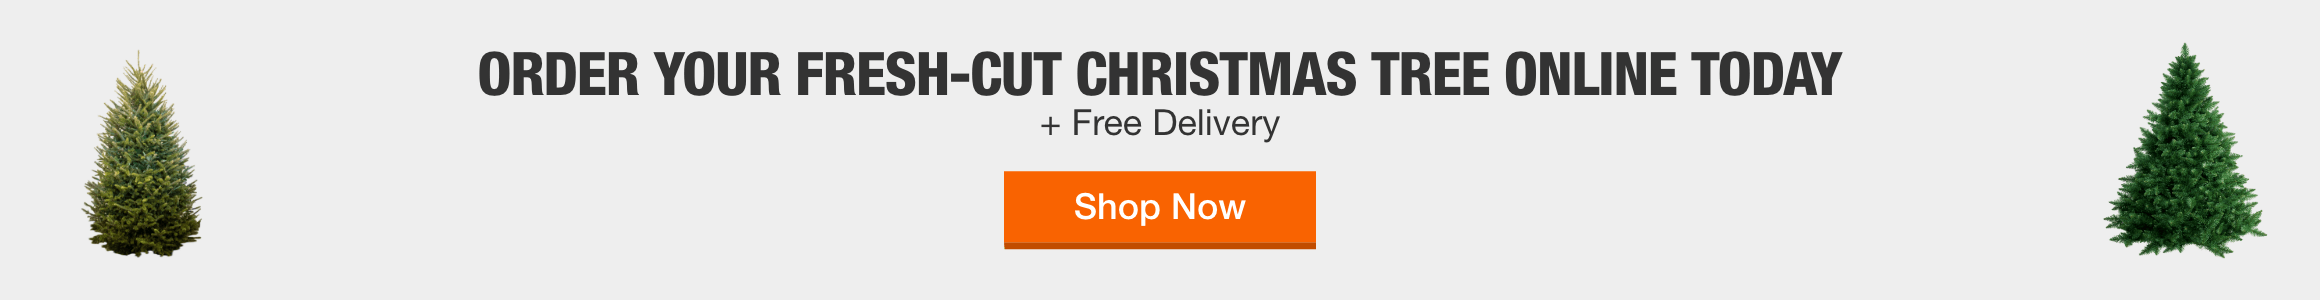 Order Your Fresh-Cut Christmas Tree Online Today + Free Delivery. Shop Now